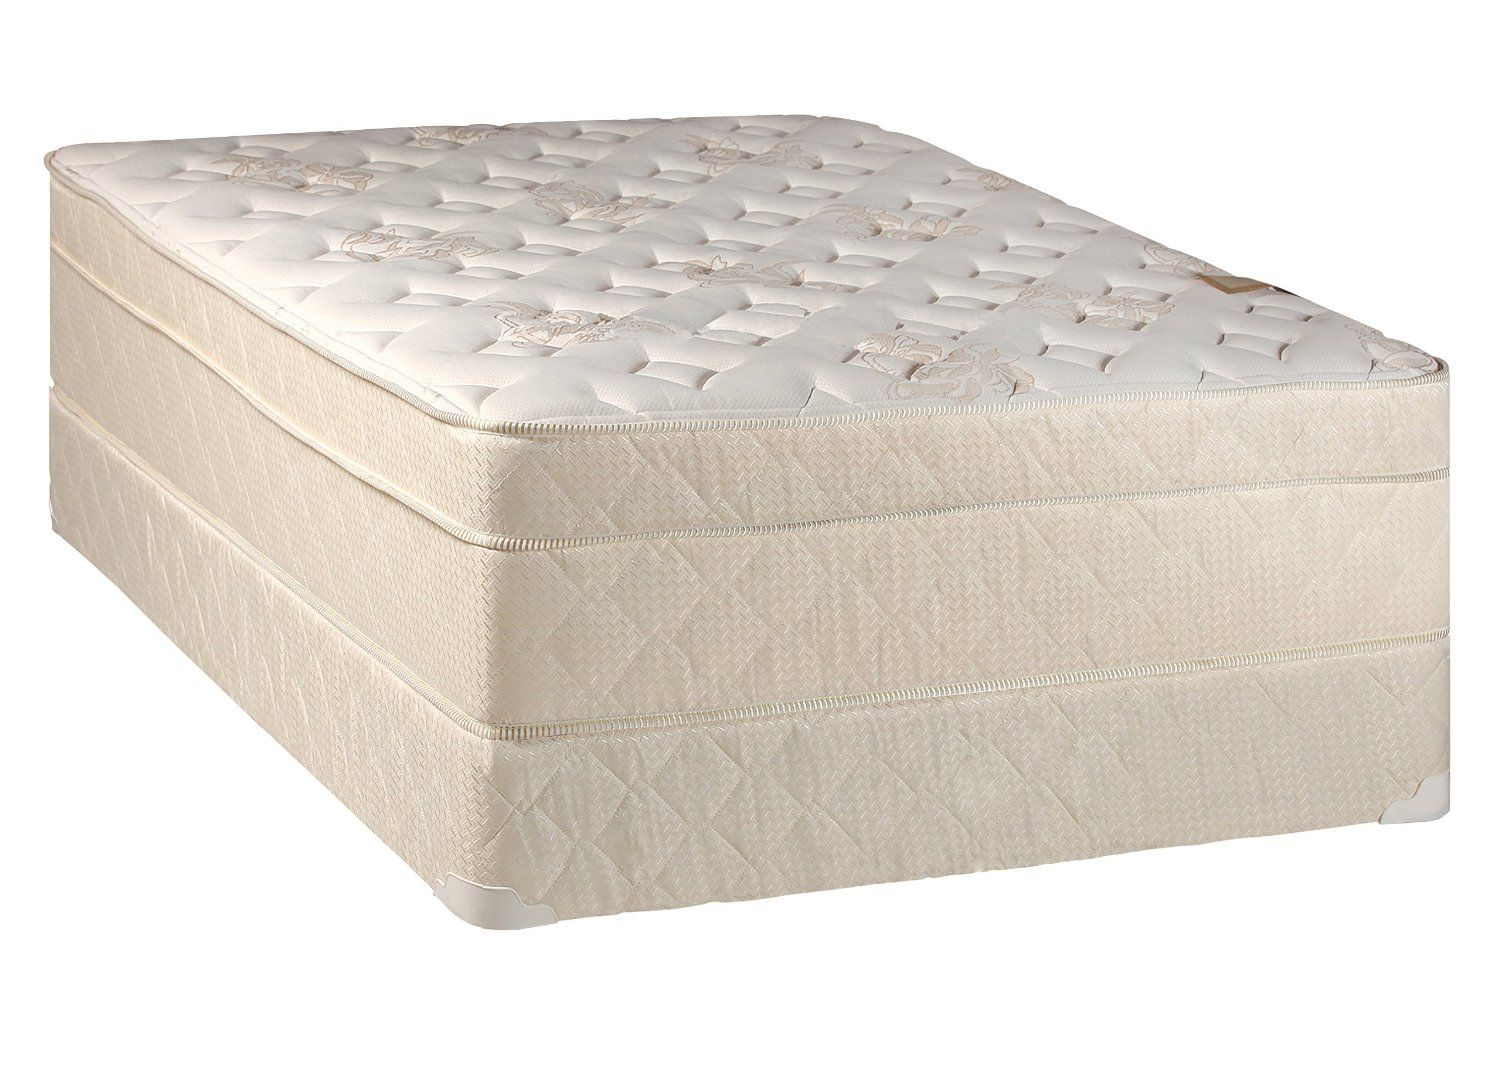 Best 10 Queen Size Mattress and Box Spring Reviews [2020]